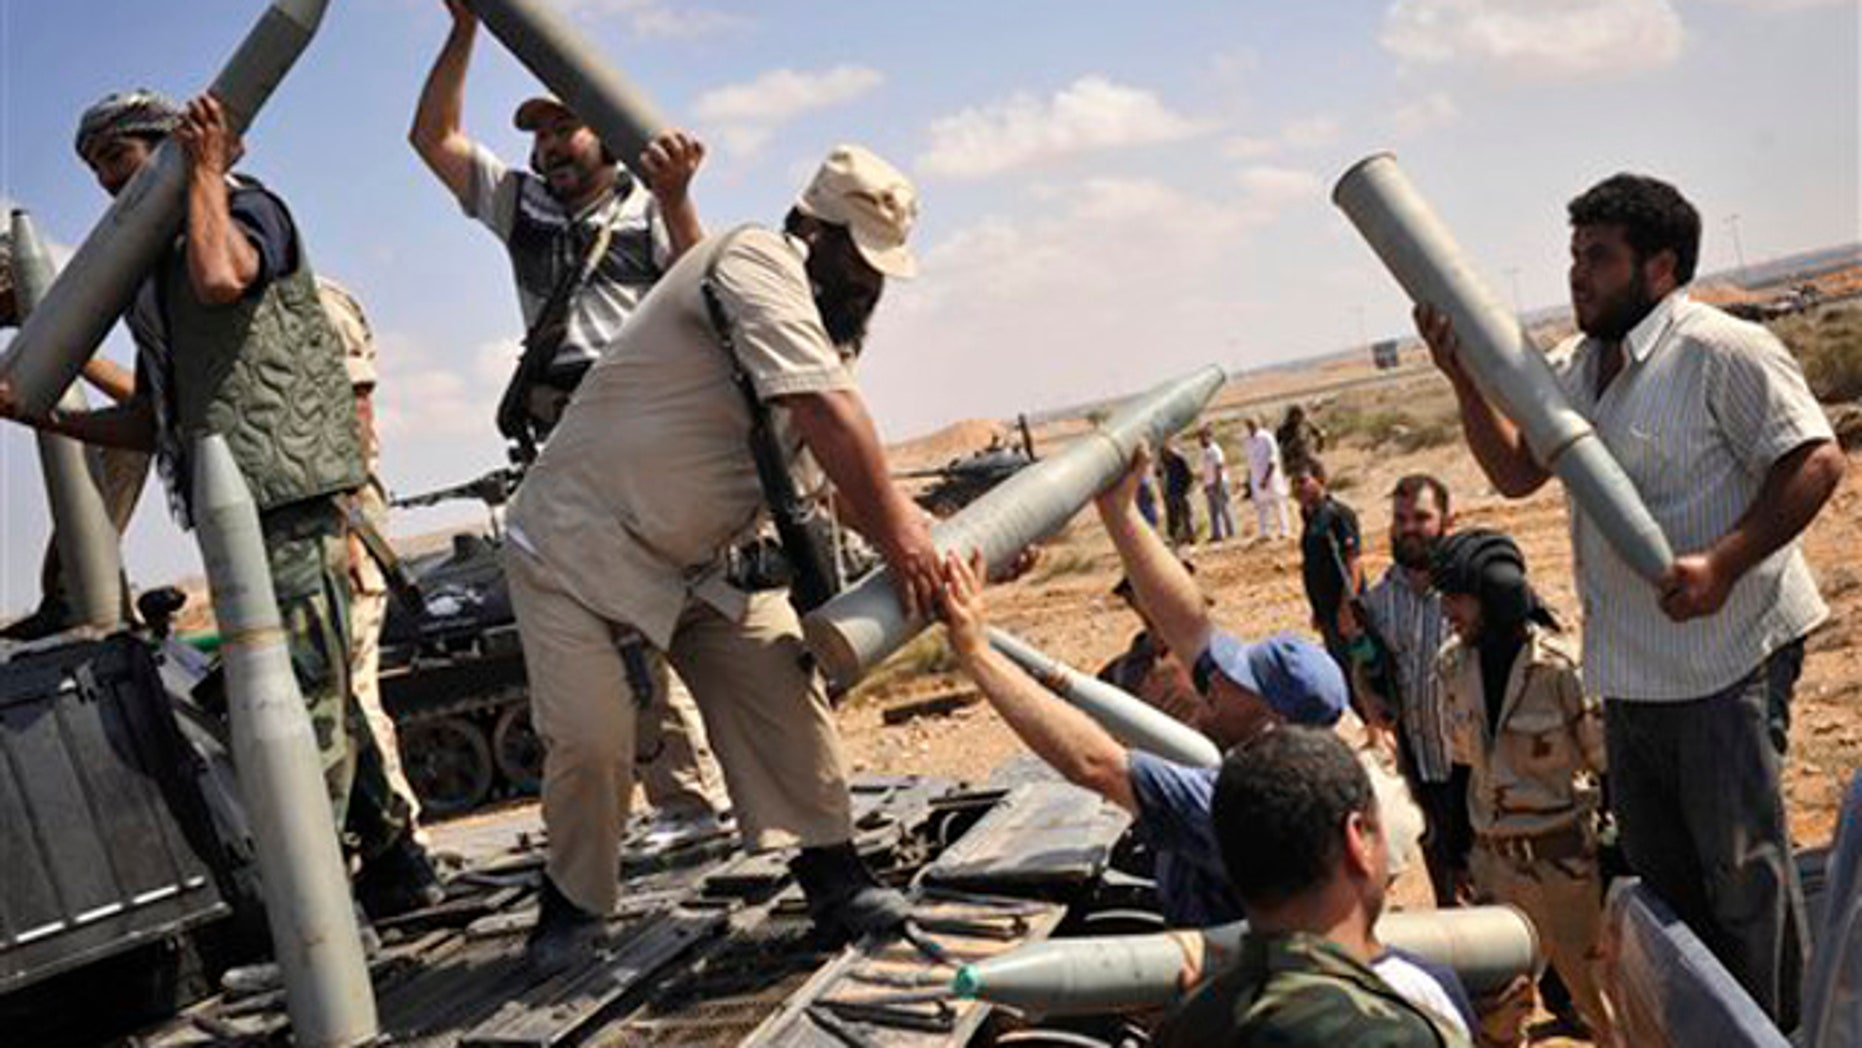 Libyan revolutionary fighters load munitions to be fired during an attack for the city of Sirte, Libya, Wednesday, Oct. 5, 2011.